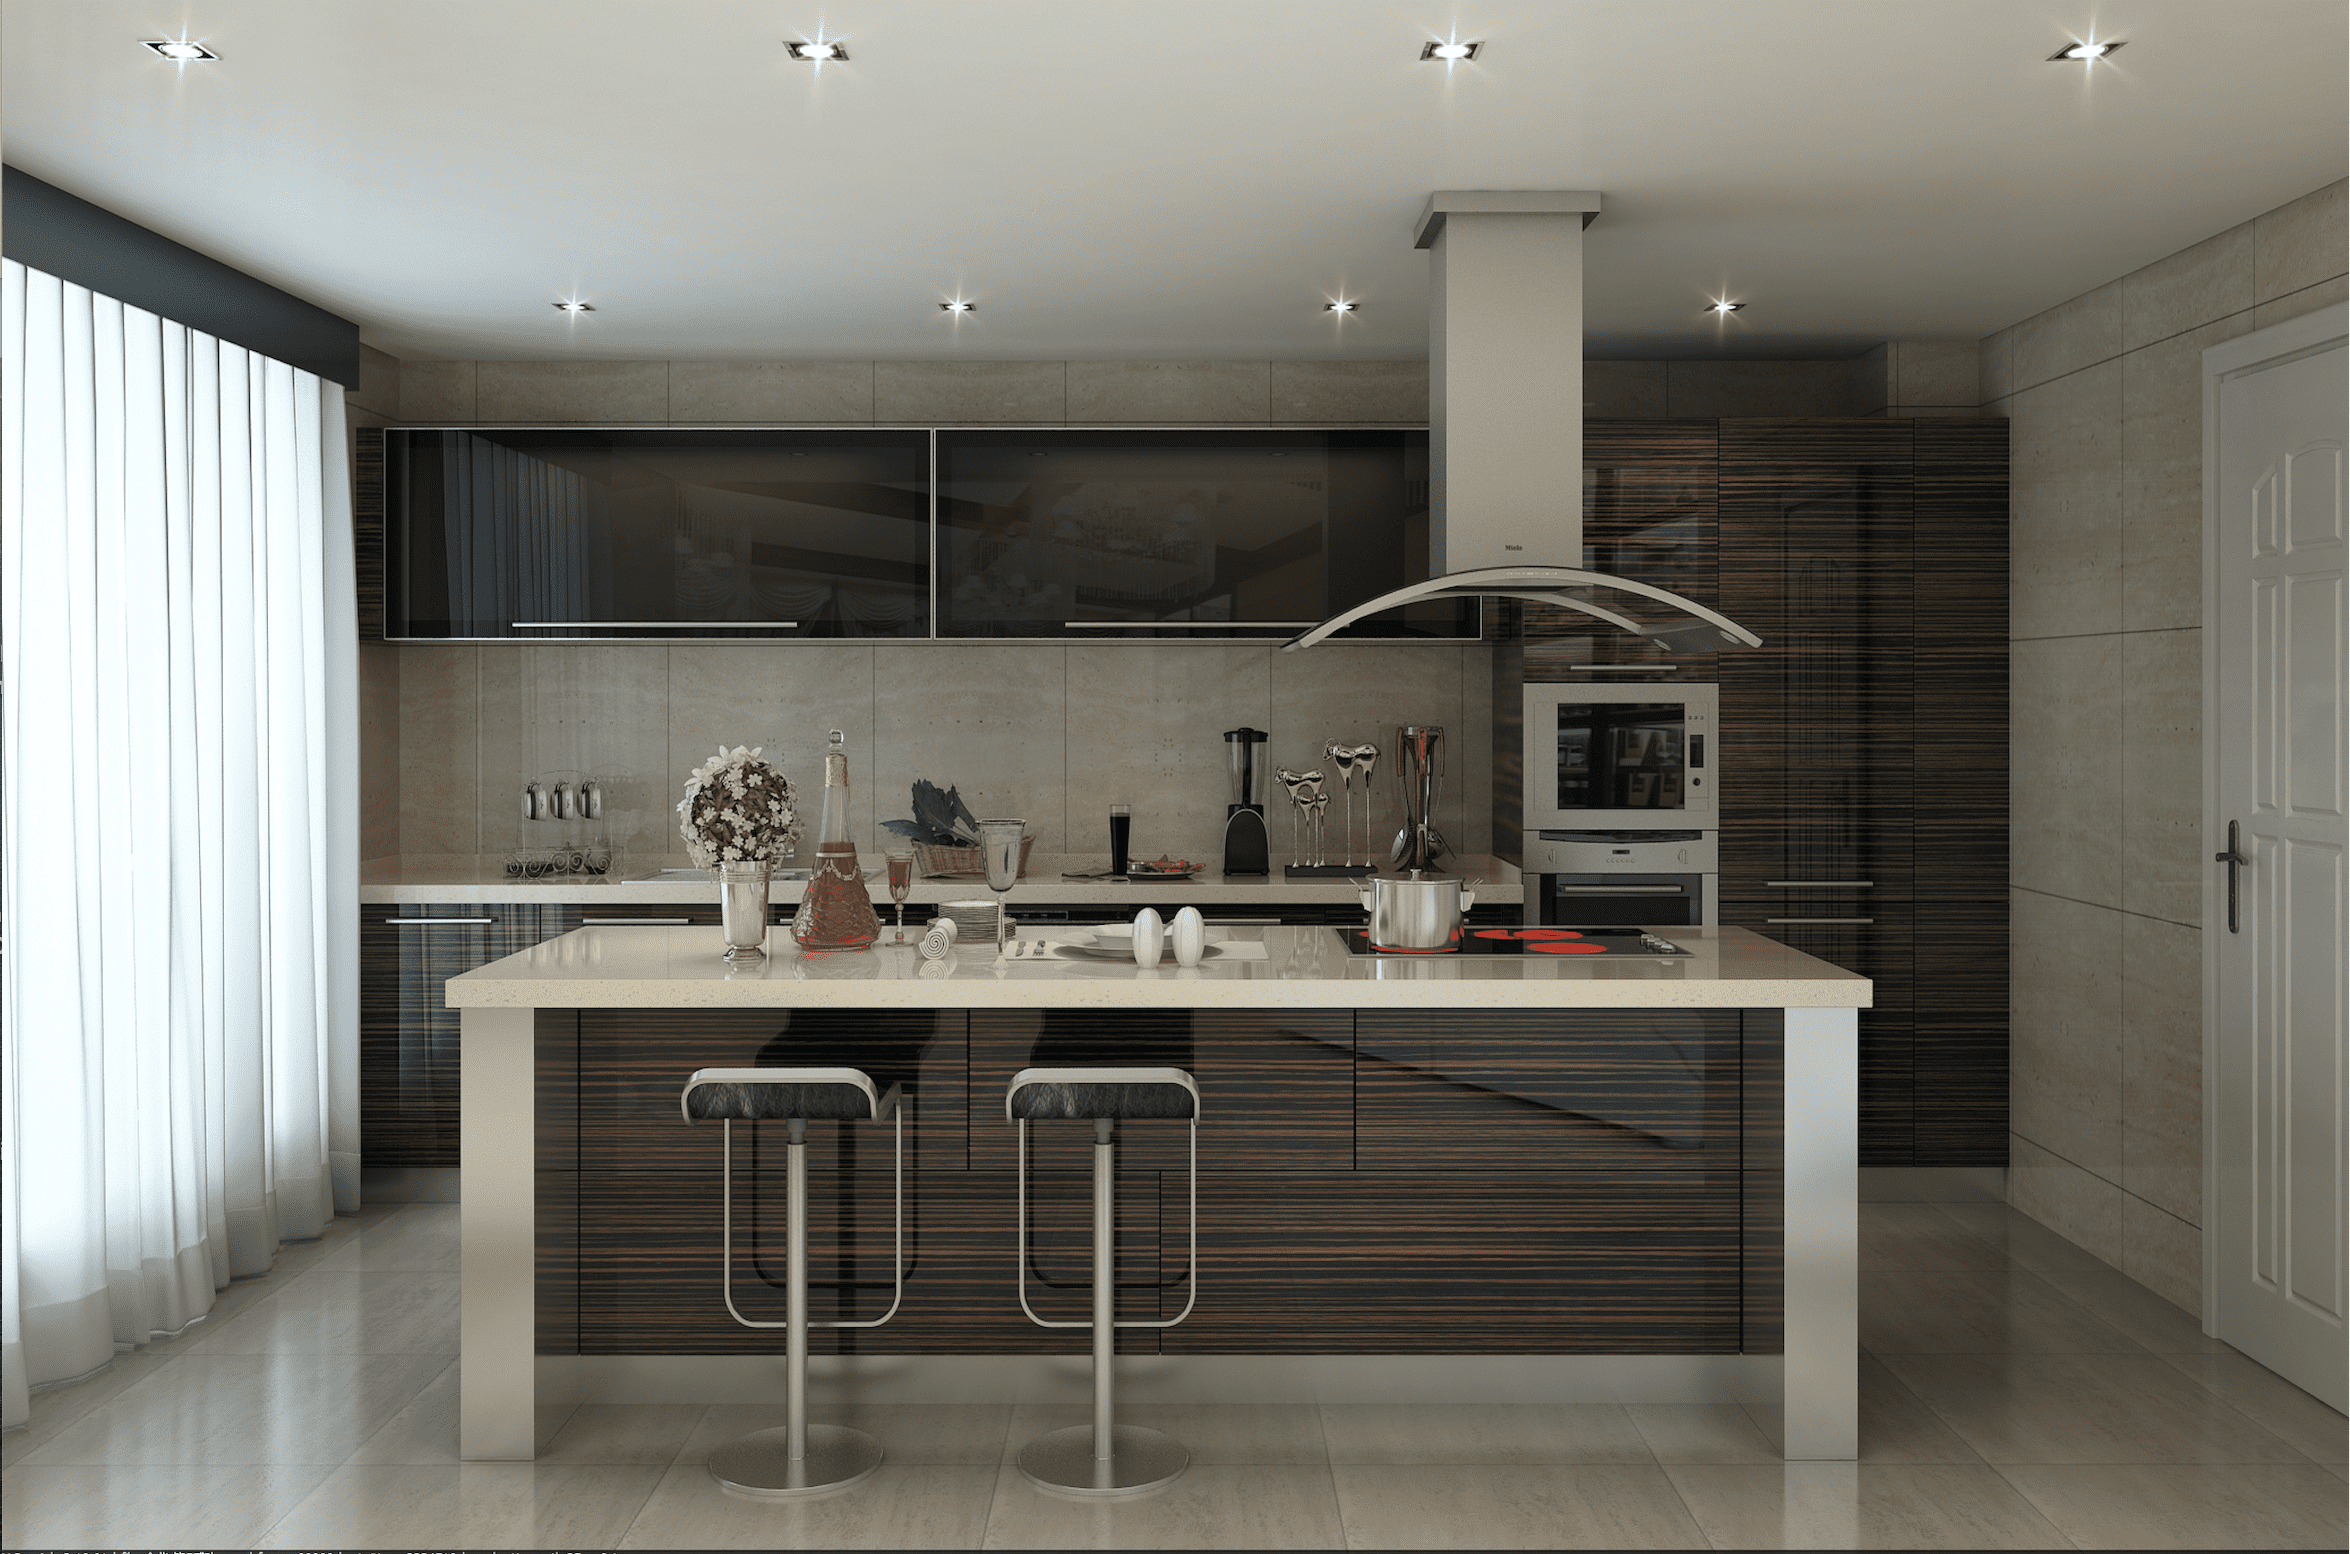 Top 10 Popular Kitchen Cabinet Designs 2020 in China ...